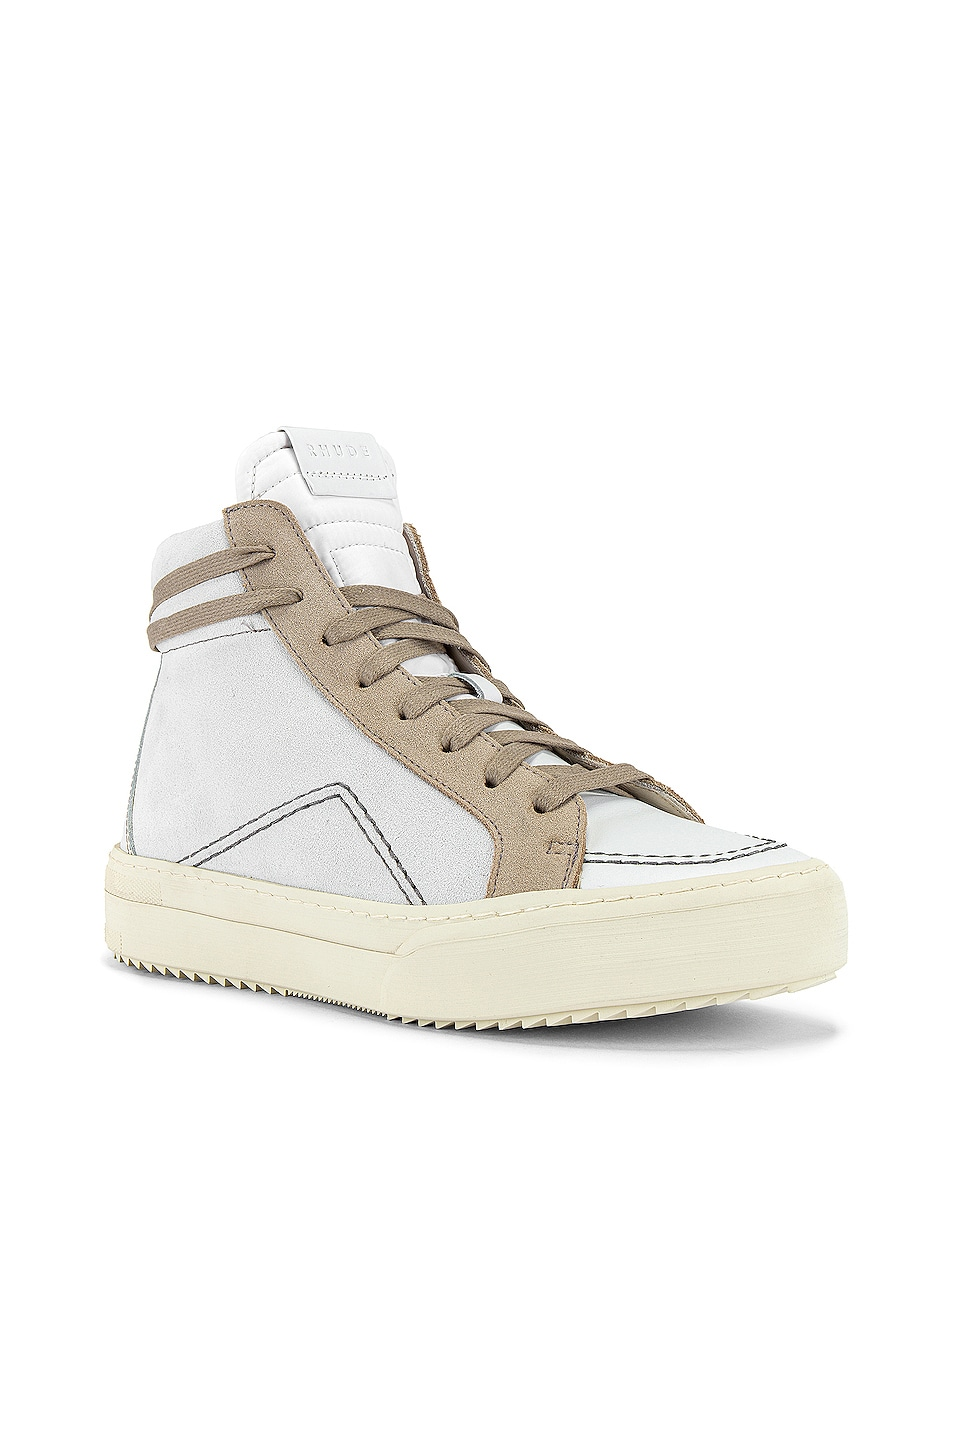 Image 1 of Rhude V1-Hi Sneaker in White Leather & Grey Suede & Brown White